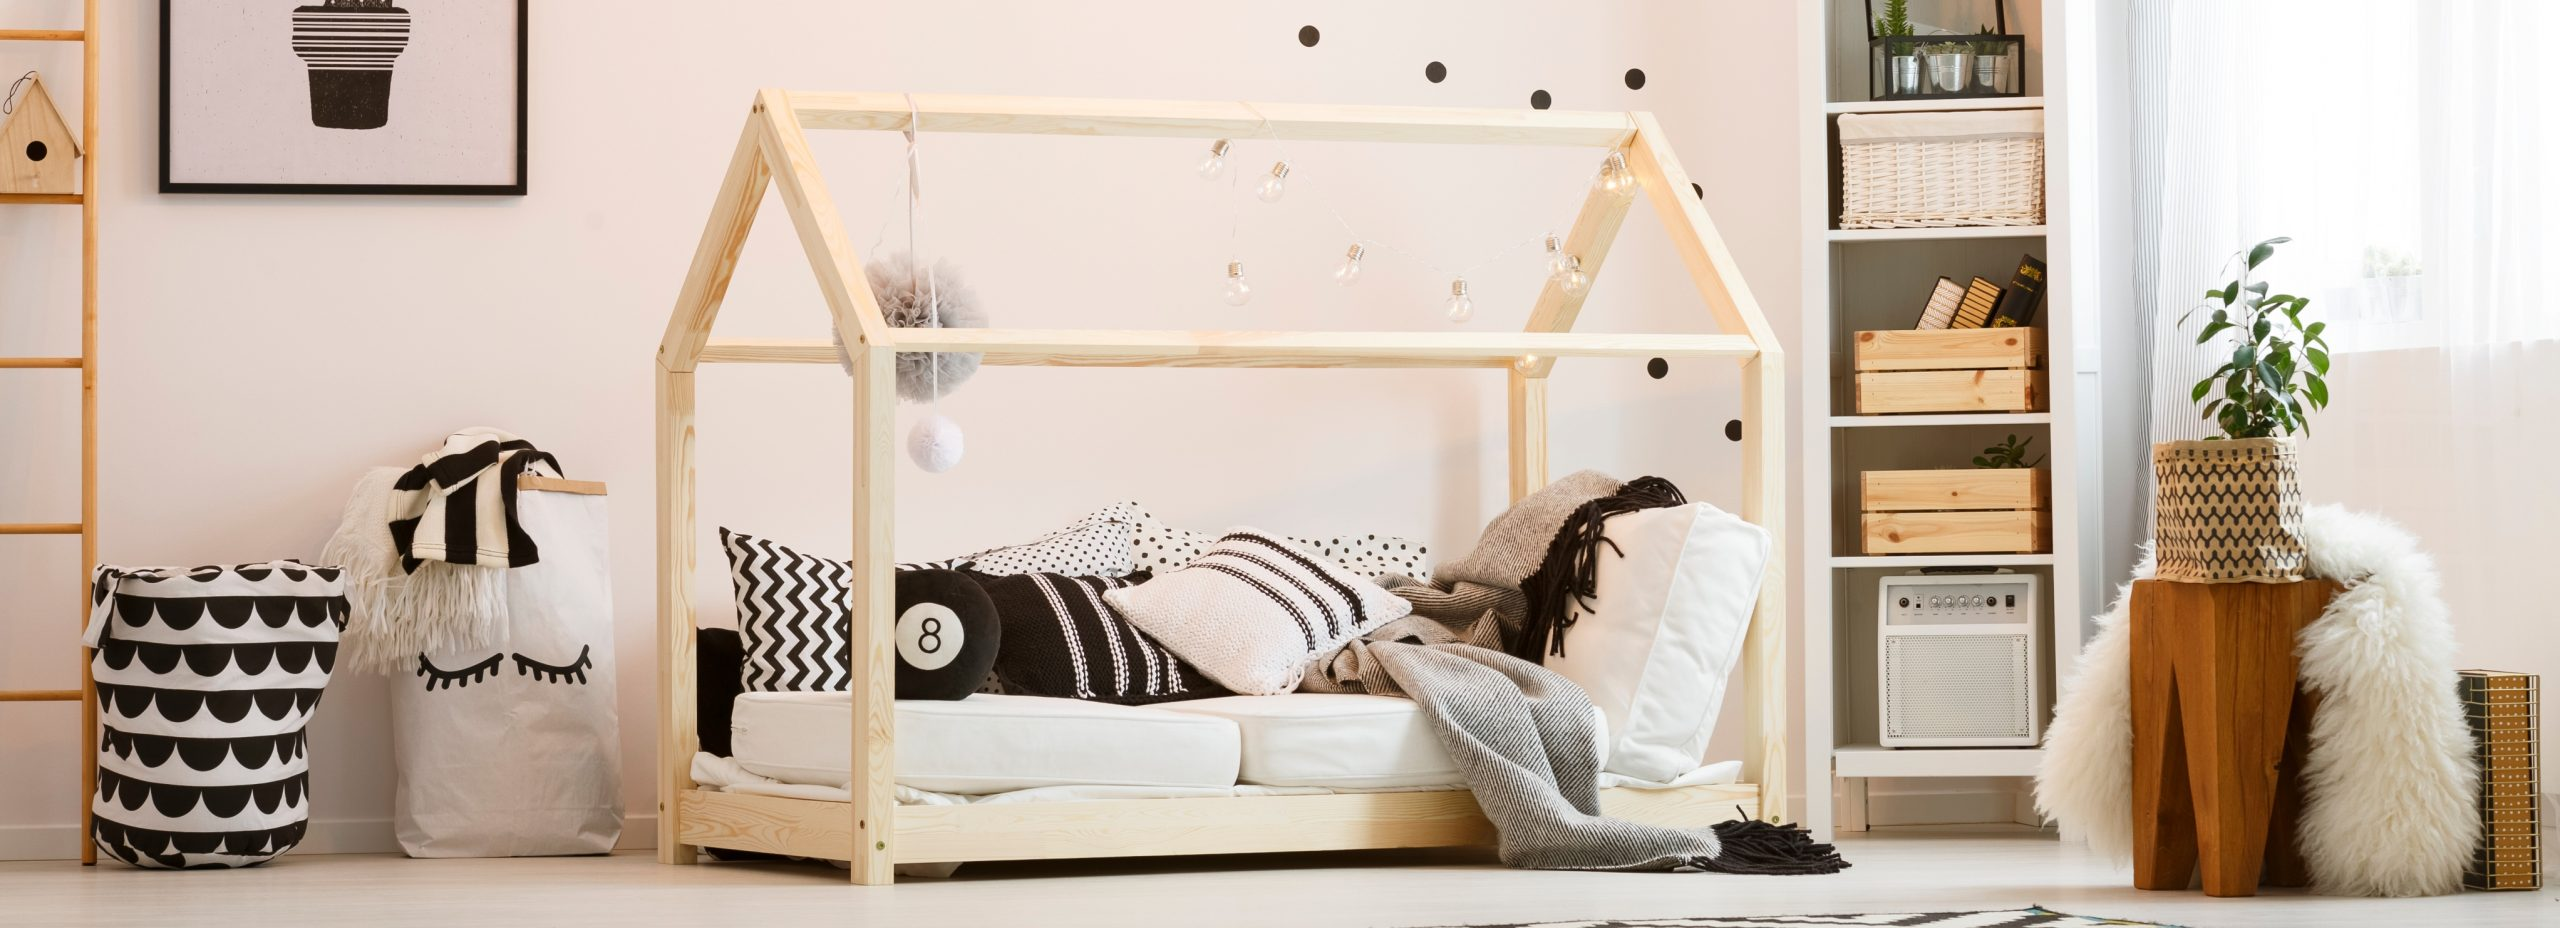 Best Montessori Bed 2020: Shopping Guide & Review